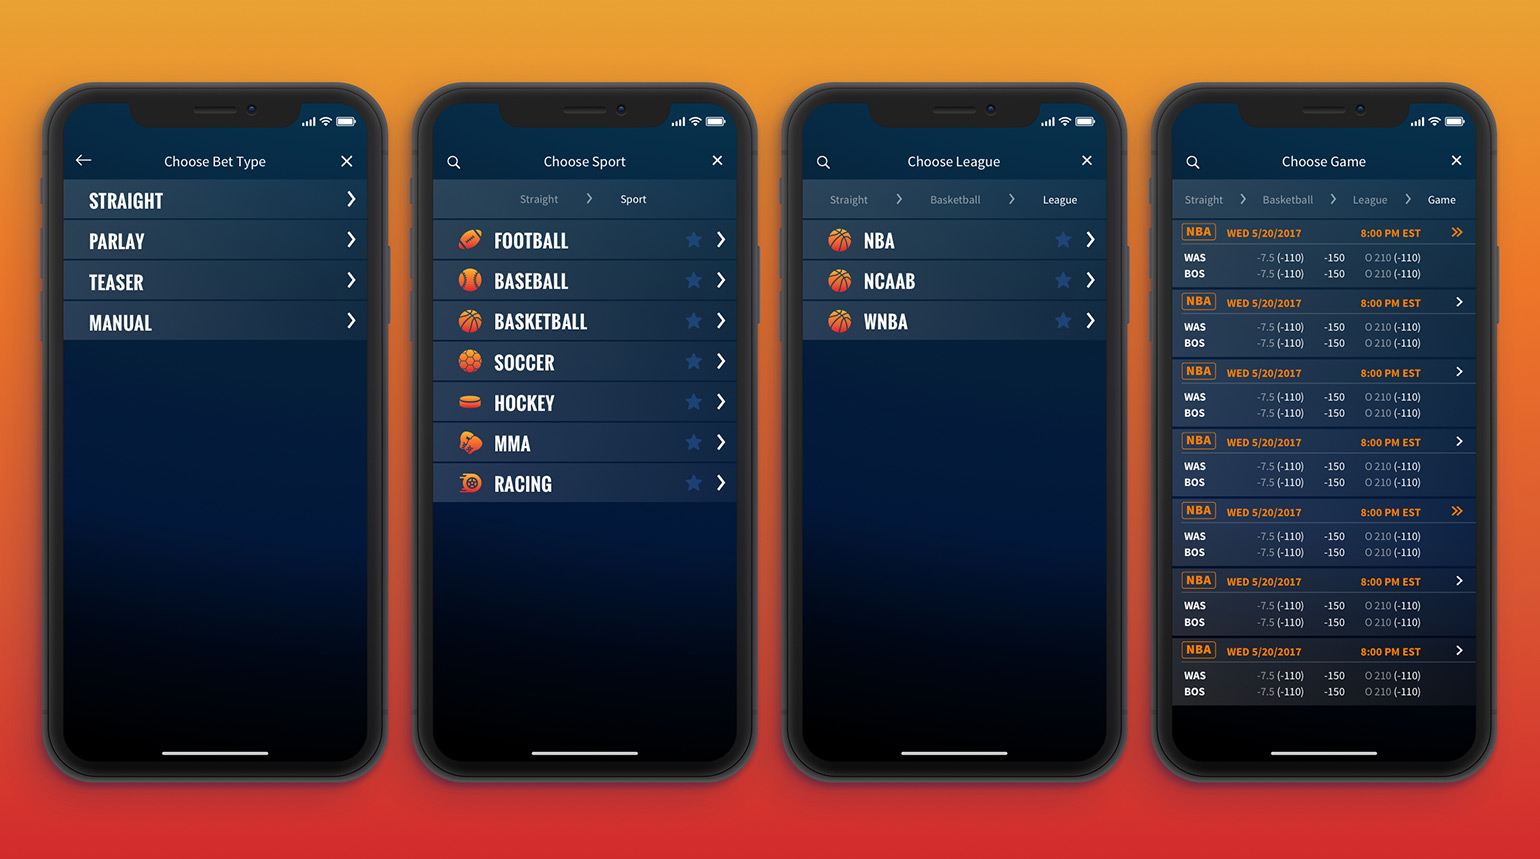 User flow allowing users to track different bet types across multiple sports categories.